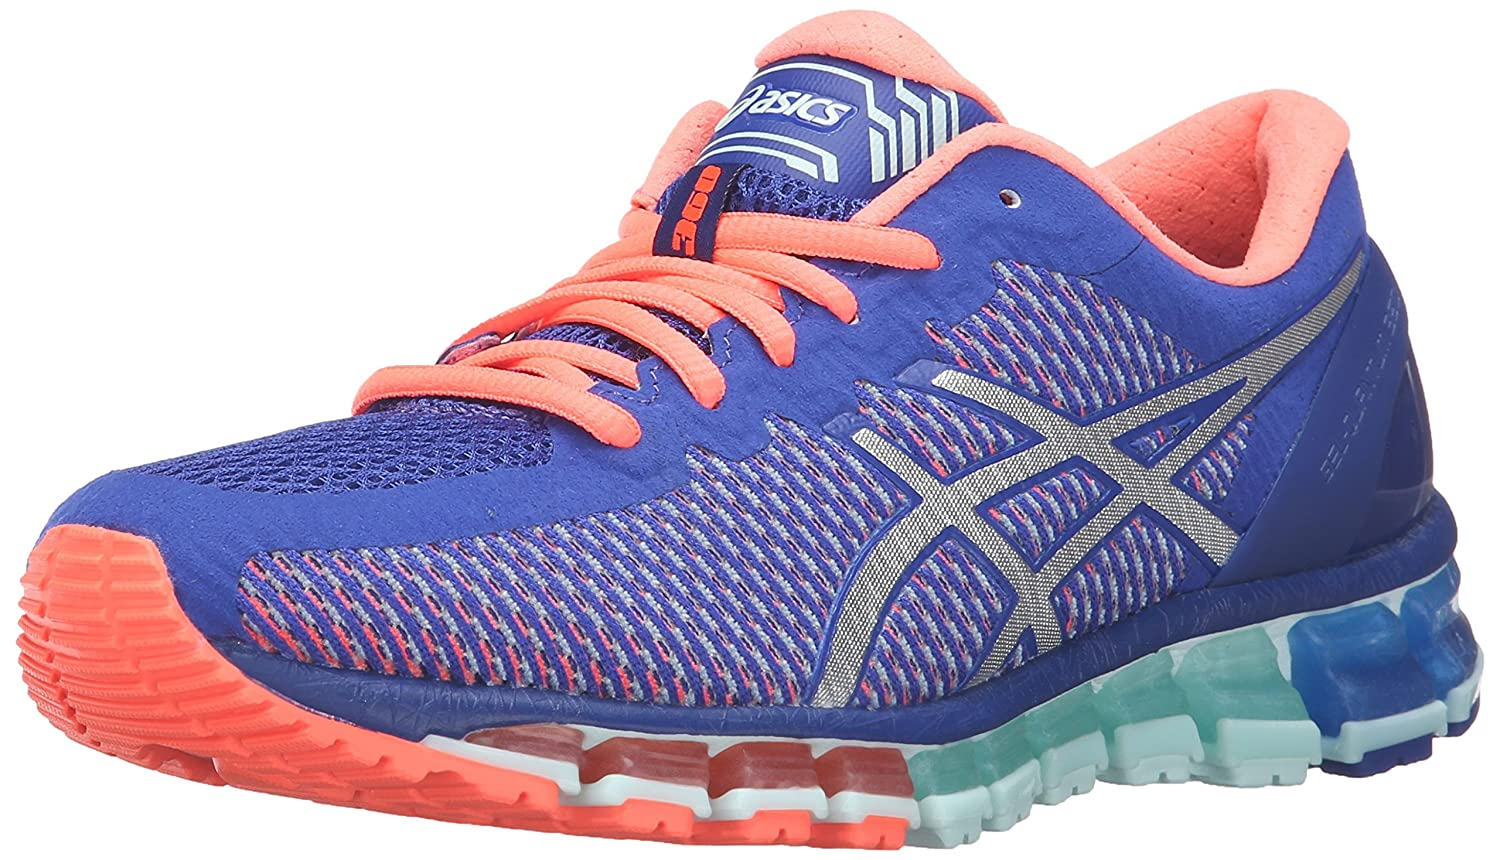 ASICS Women's Gel-Quantum 360 cm Running Shoe B017TFRNLC 8 B(M) US|Asics Blue/White/Flash Coral